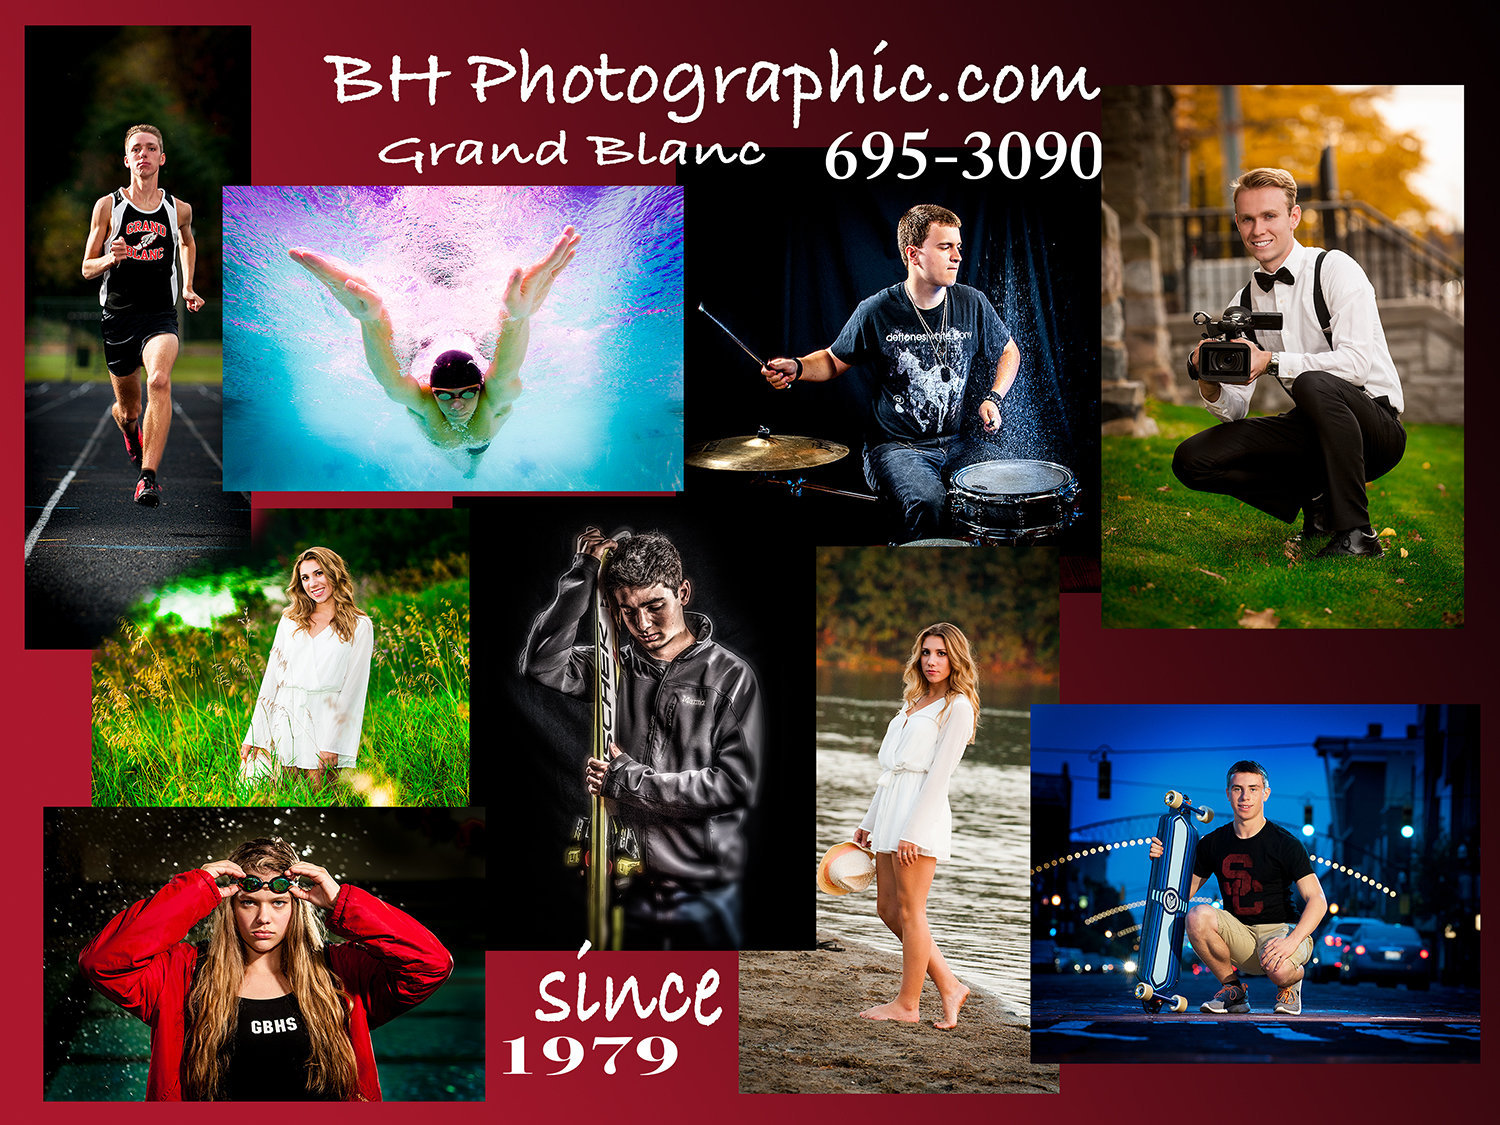 bhphotographic sports seniors add.jpg